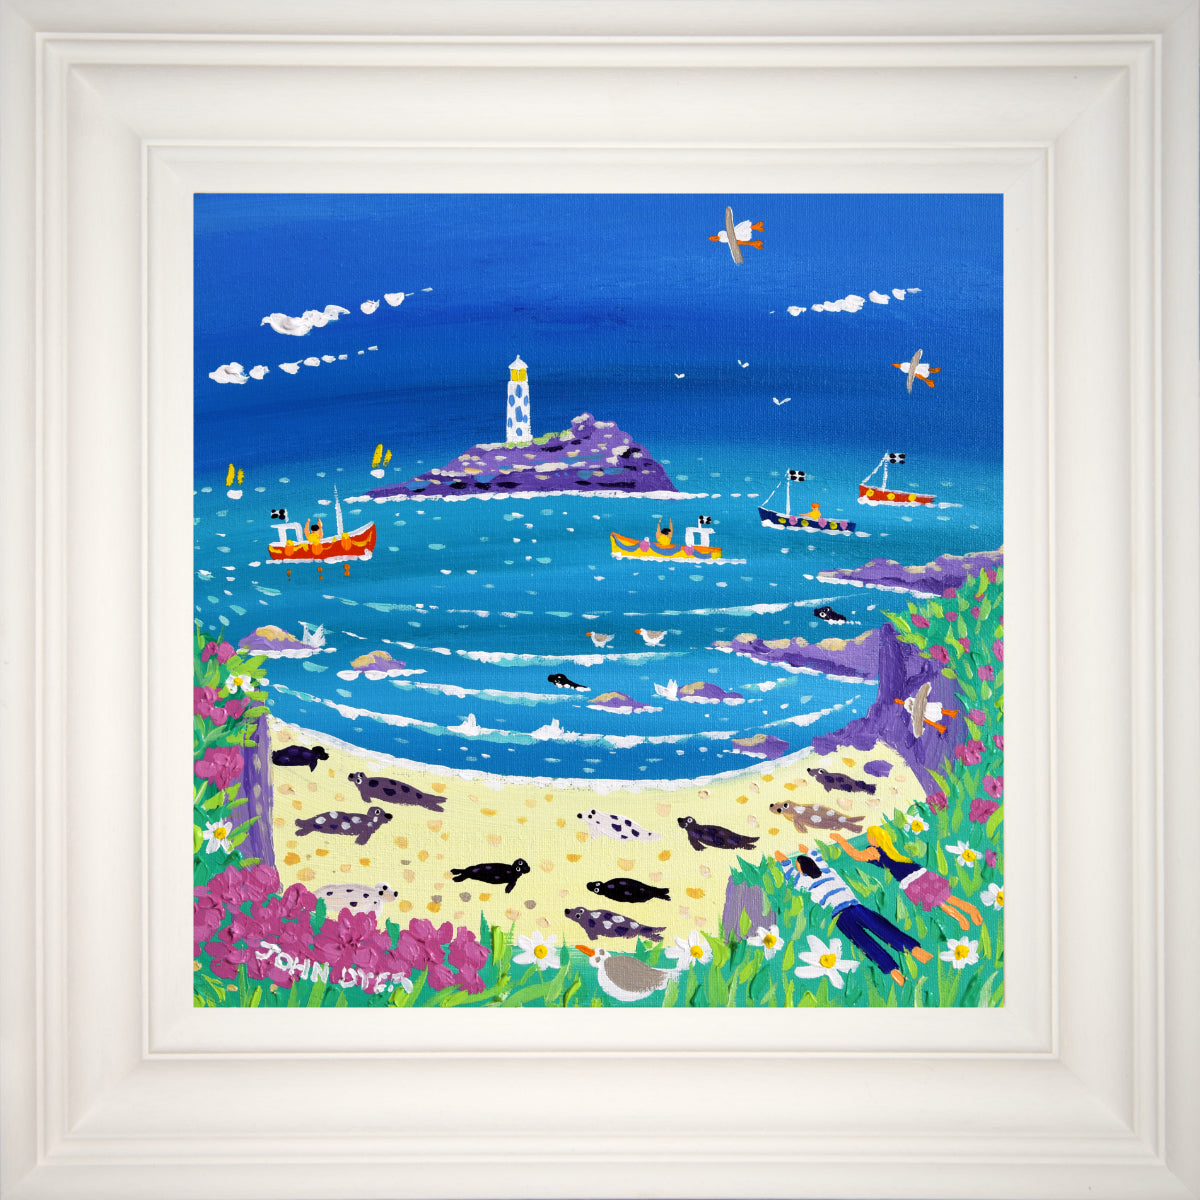 John Dyer Painting. Sneaky Peek at the Seals, Godrevy